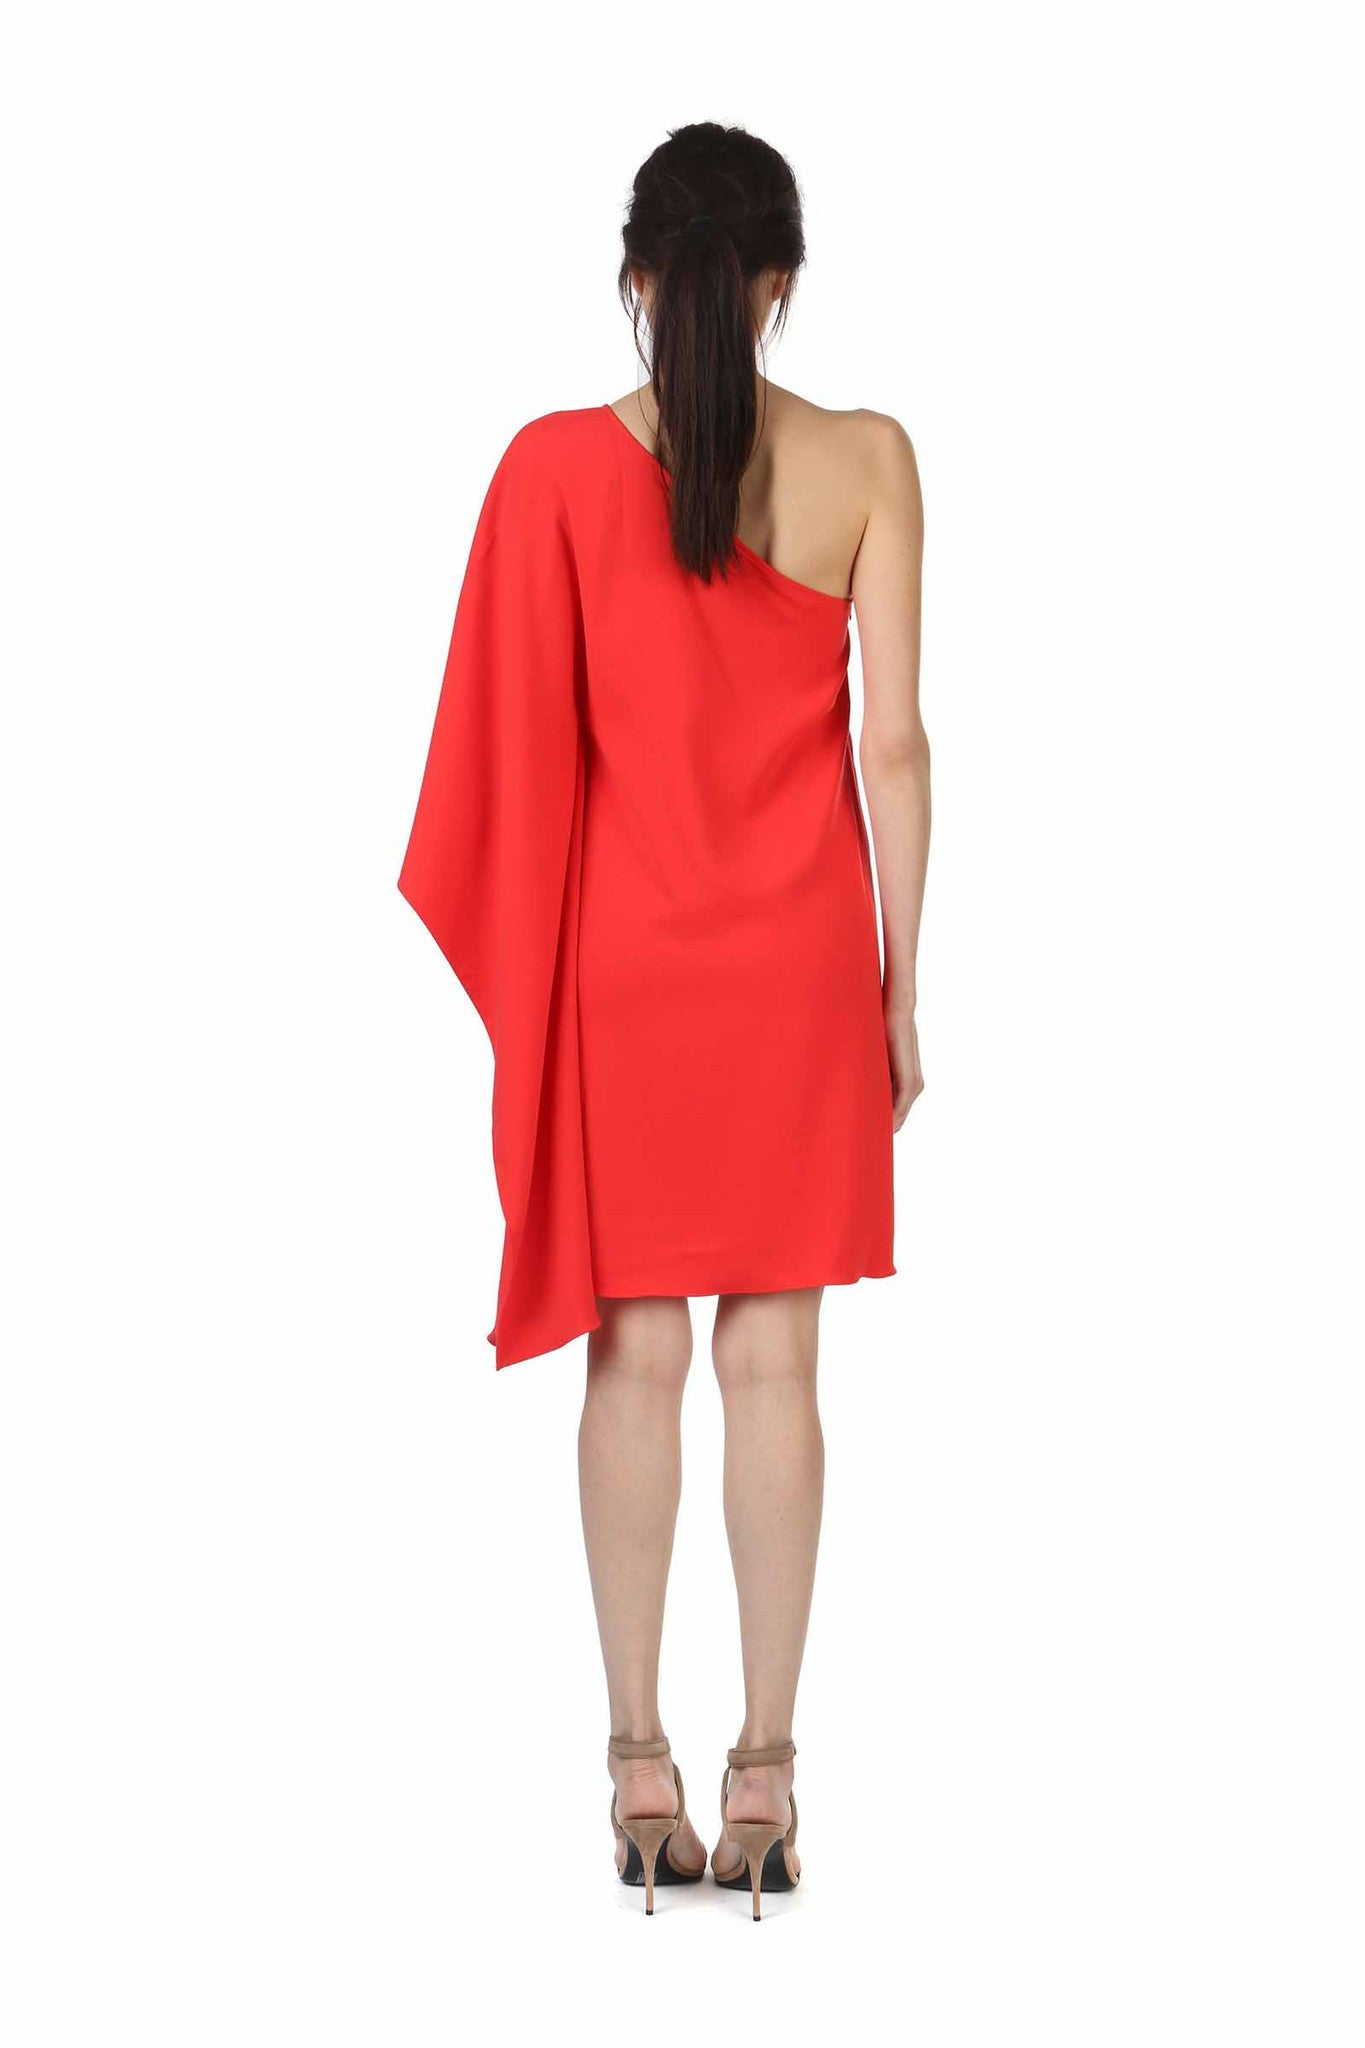 Jay Godfrey Coral One-Shoulder Kimono Dress - Back View